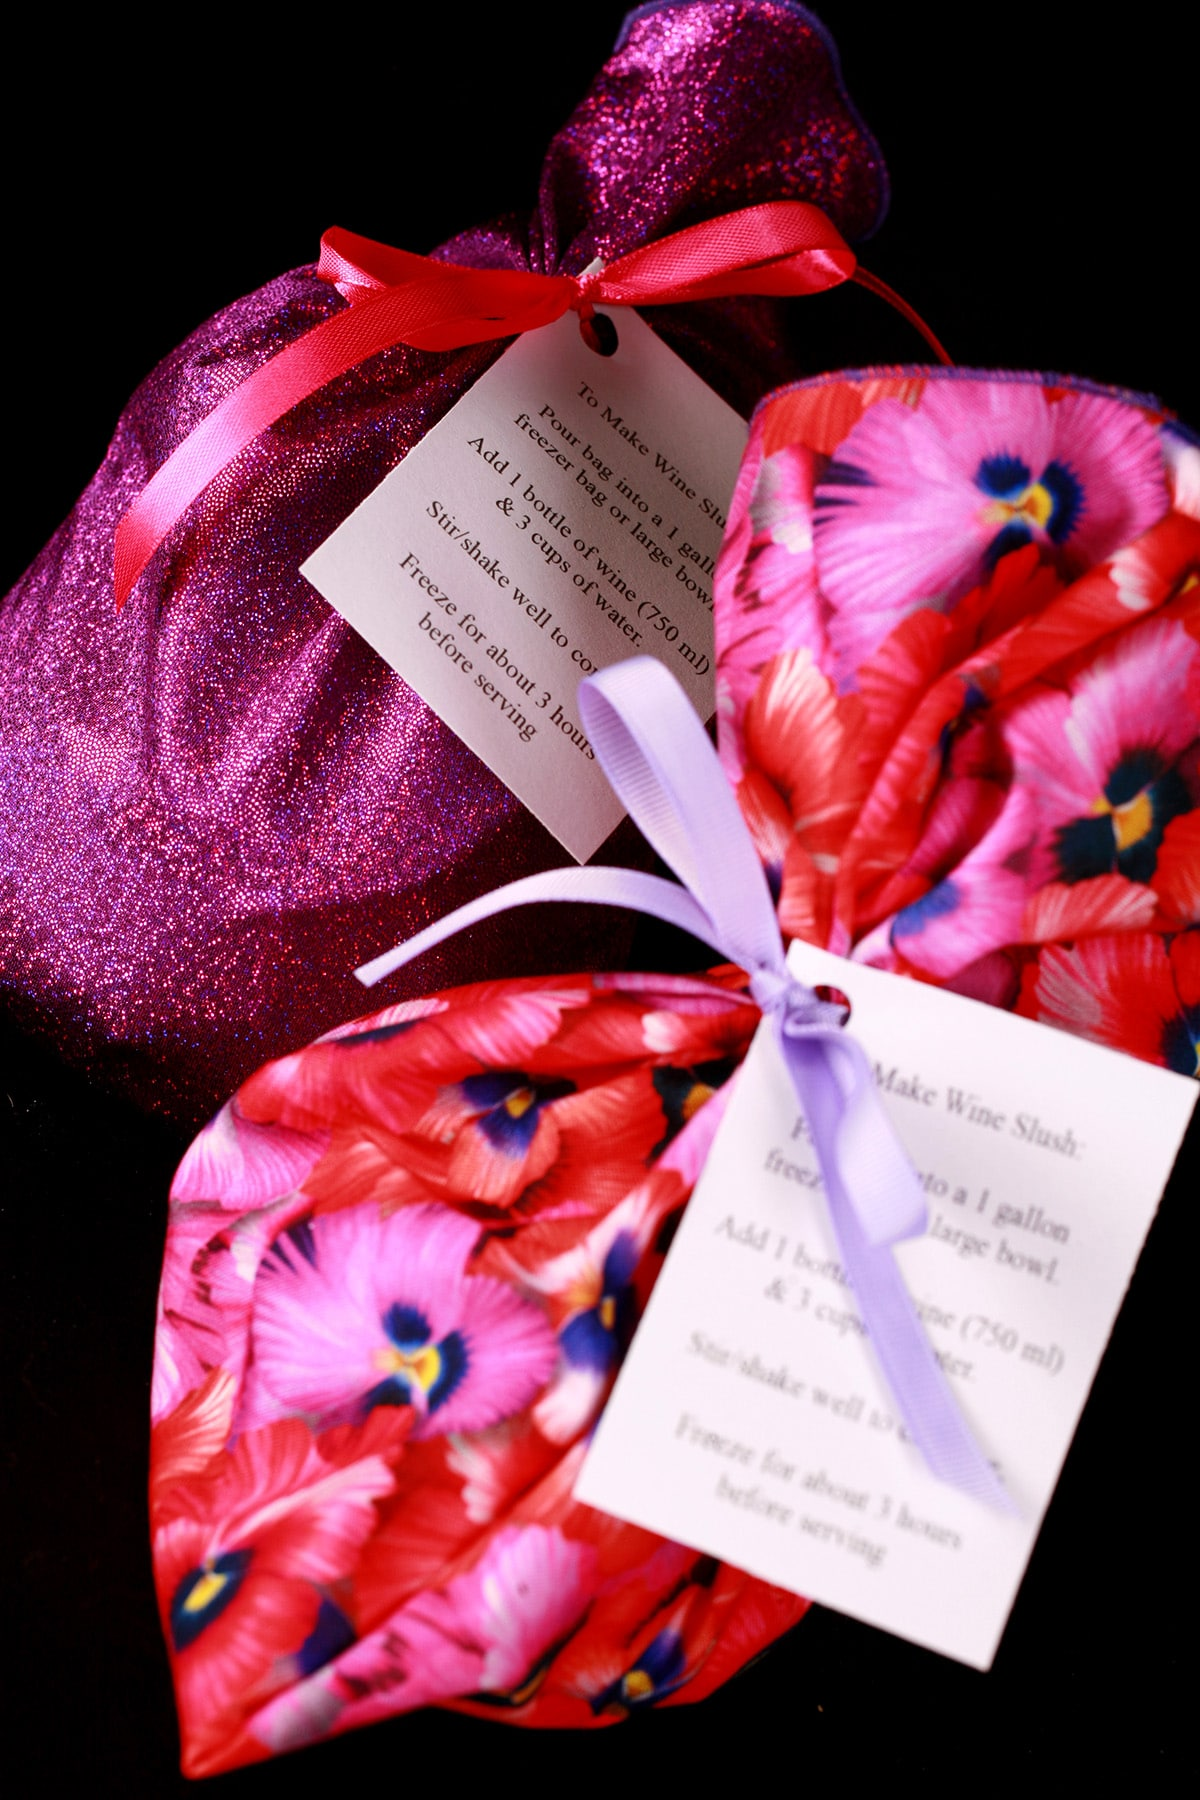 Two gift bags - in the foreground, a pink and purple floral fabric bag, in the background is a bag made from purple hologram fabric. Each bag is tied with a bow, and has a little card with instructions on it.